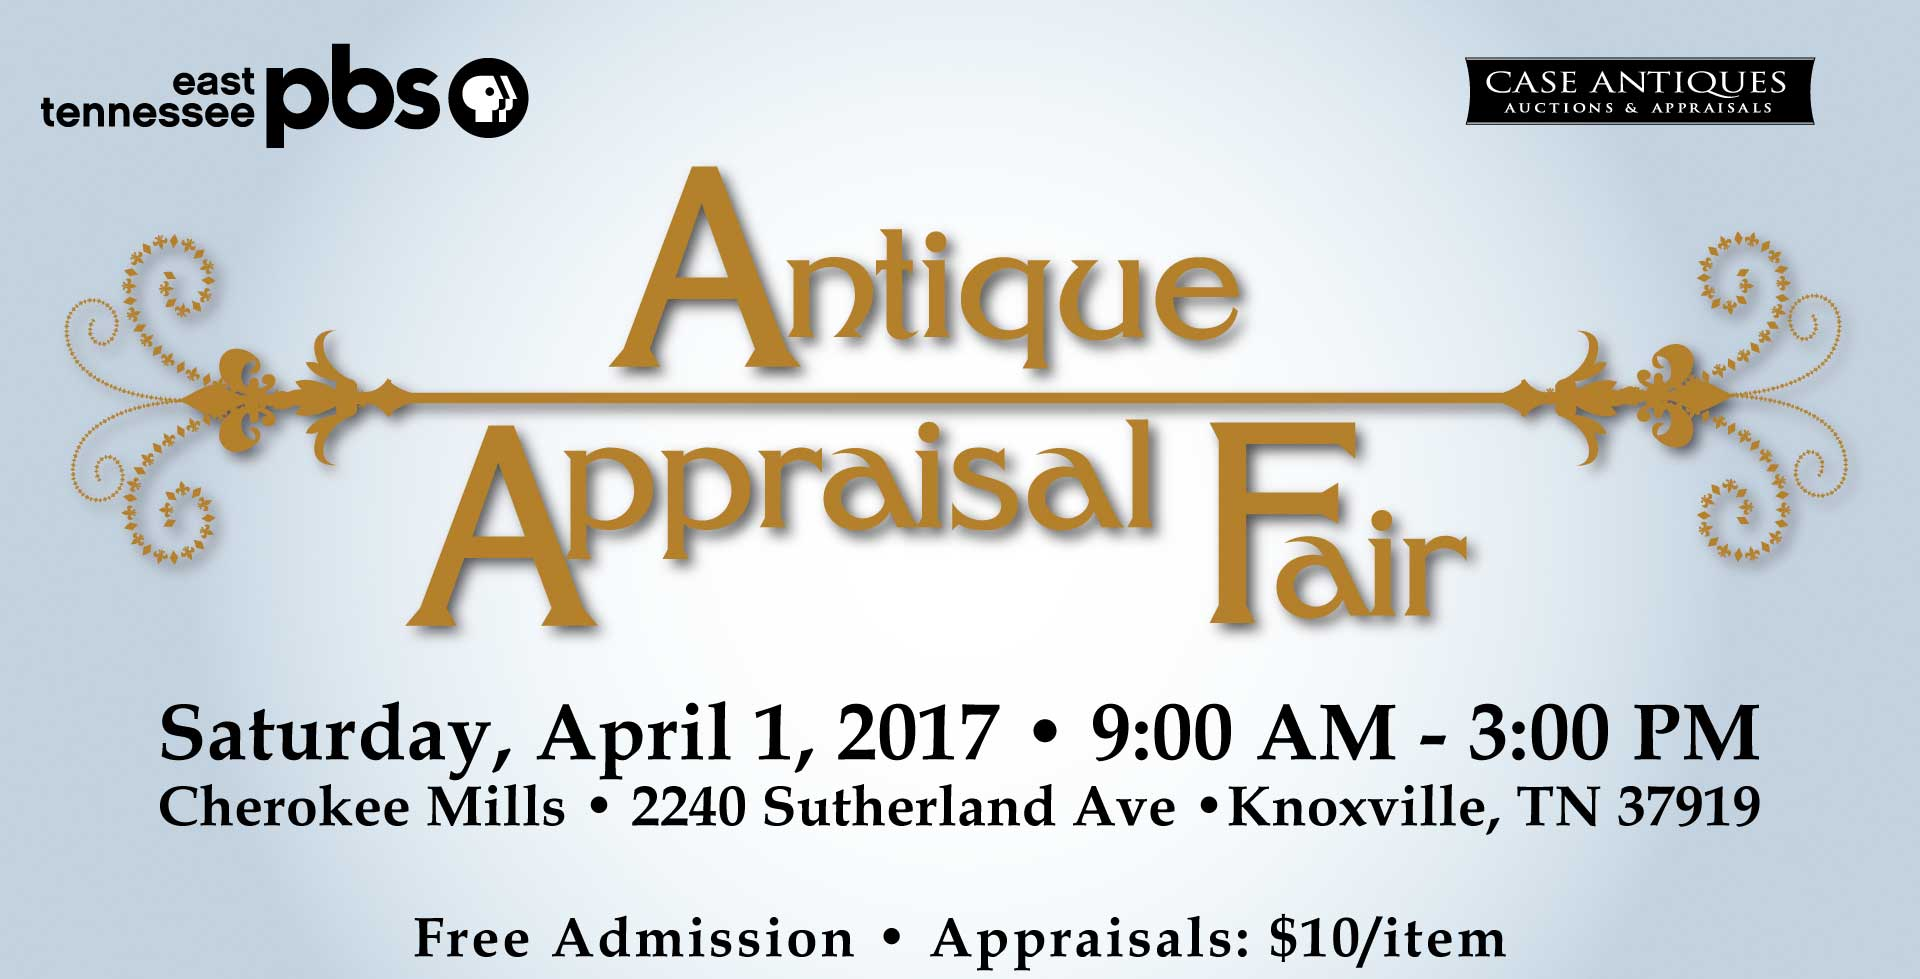 East Tennessee PBS Presents the Antique and Appraisal Fair - April 1, 2017